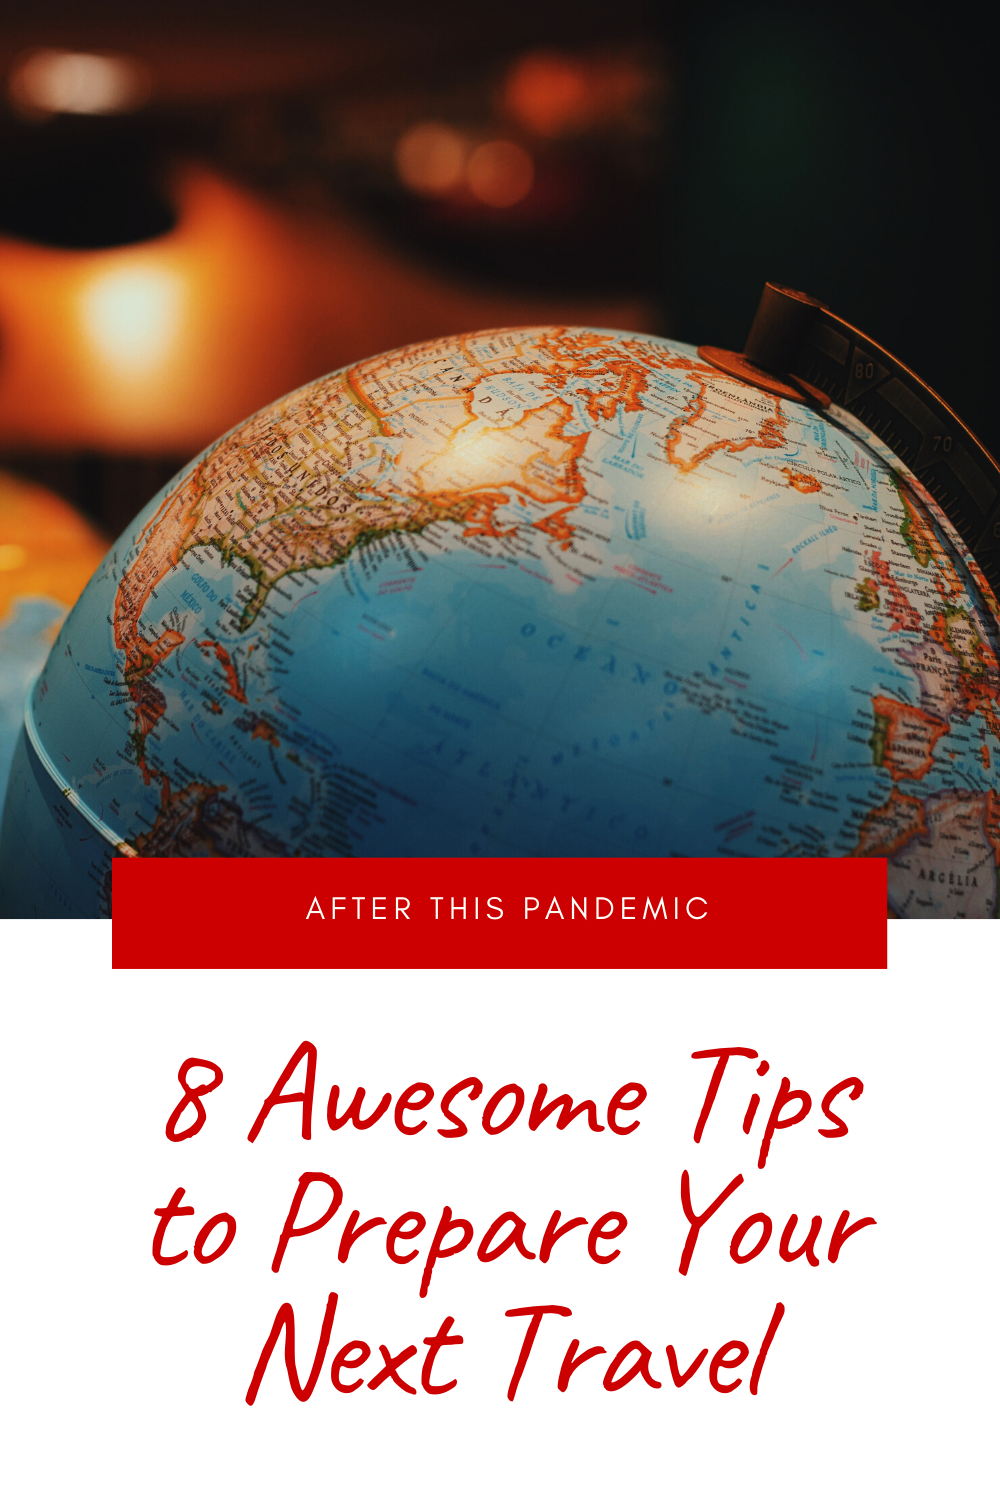 8 Awesome Tips to Prepare Your Next Travel After This Pandemic